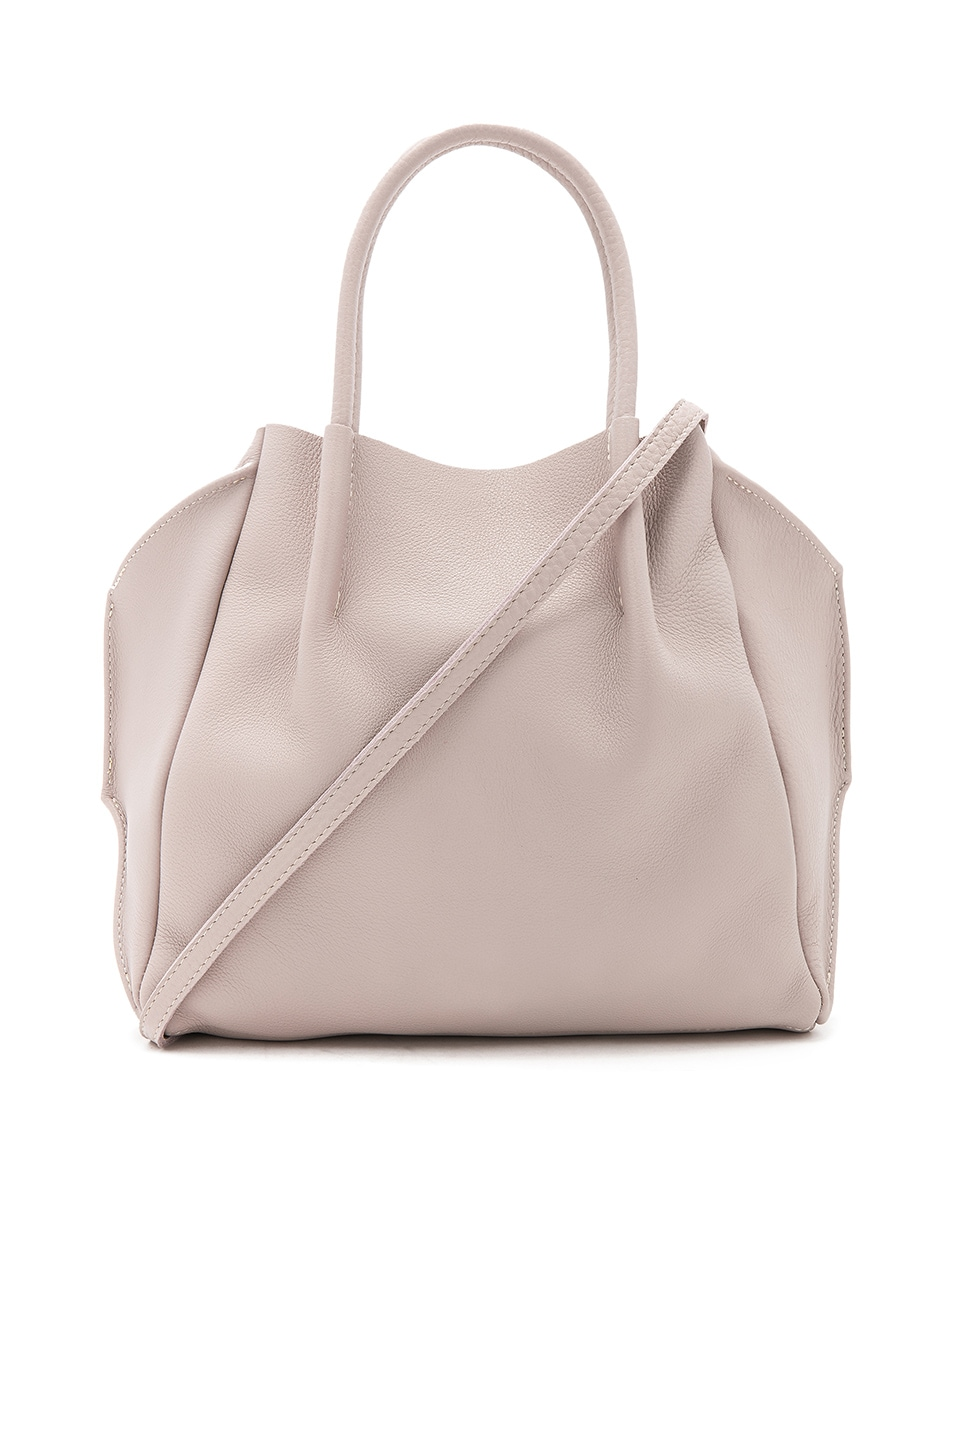 Oliveve Zoe Tote in Buff